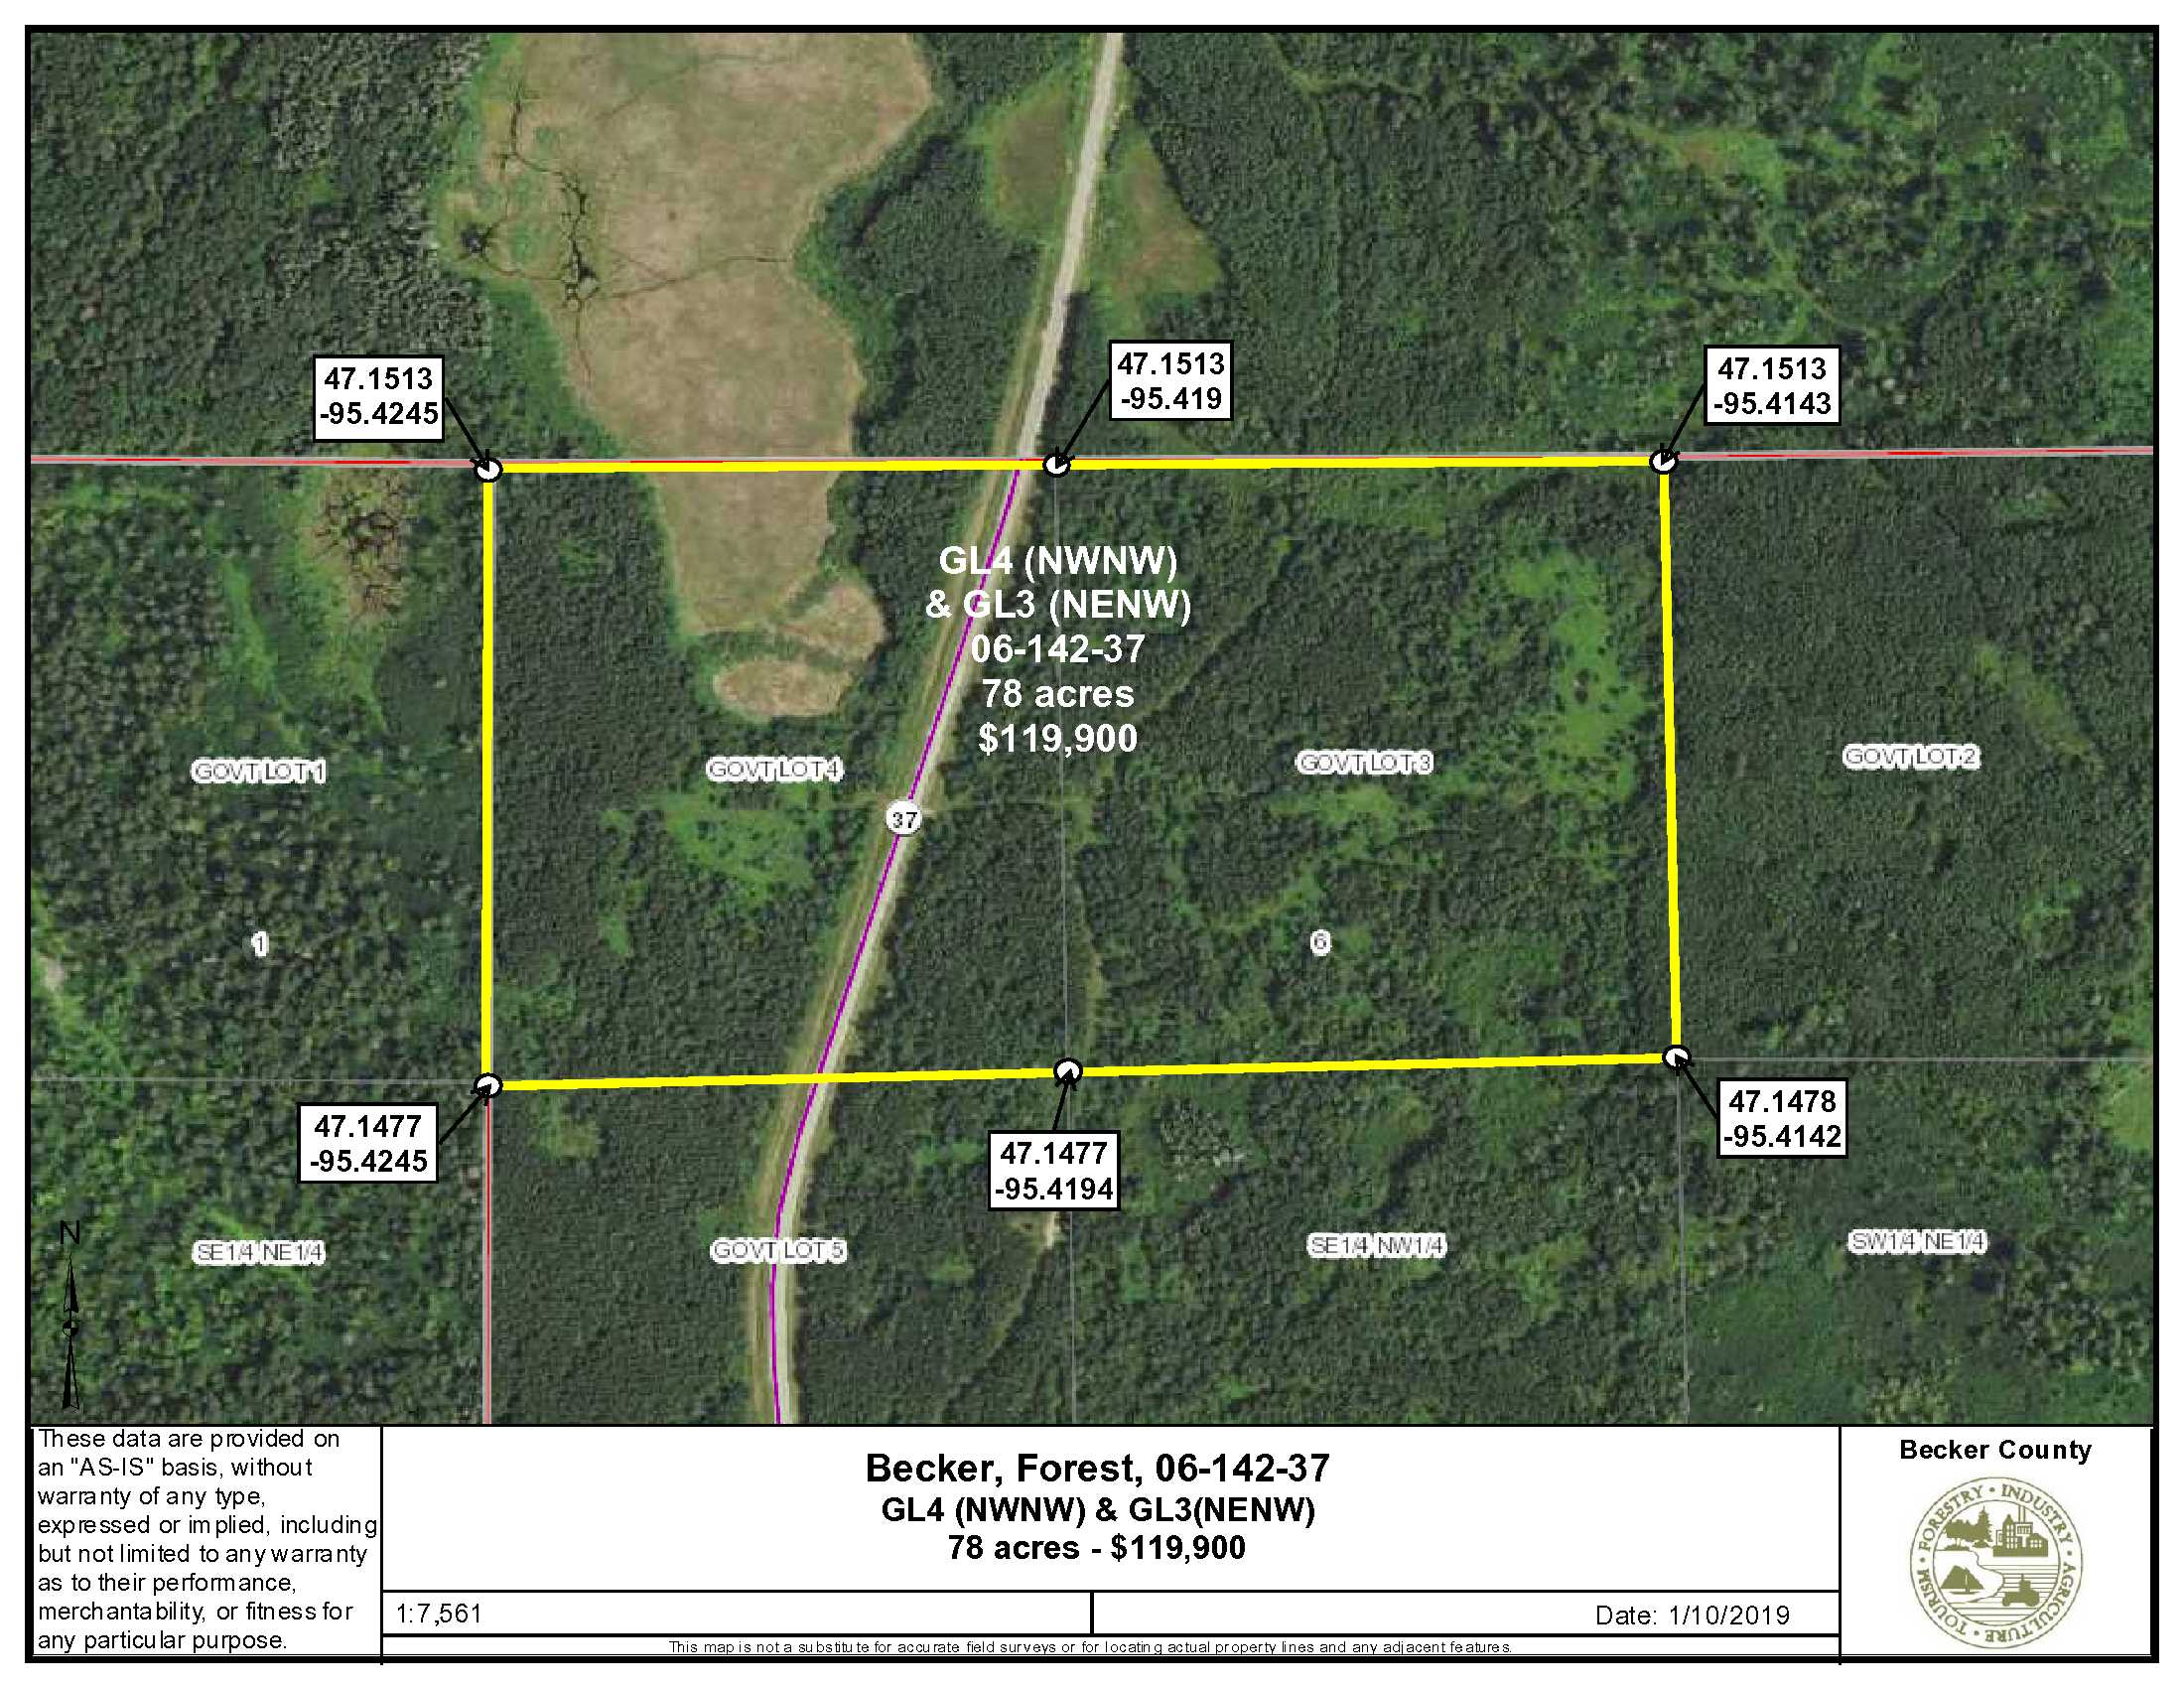 GL3 (NENW) & GL4(NWNW), Long Lost Lake Rd (Co Rd 37), Forest Twp, Becker Co